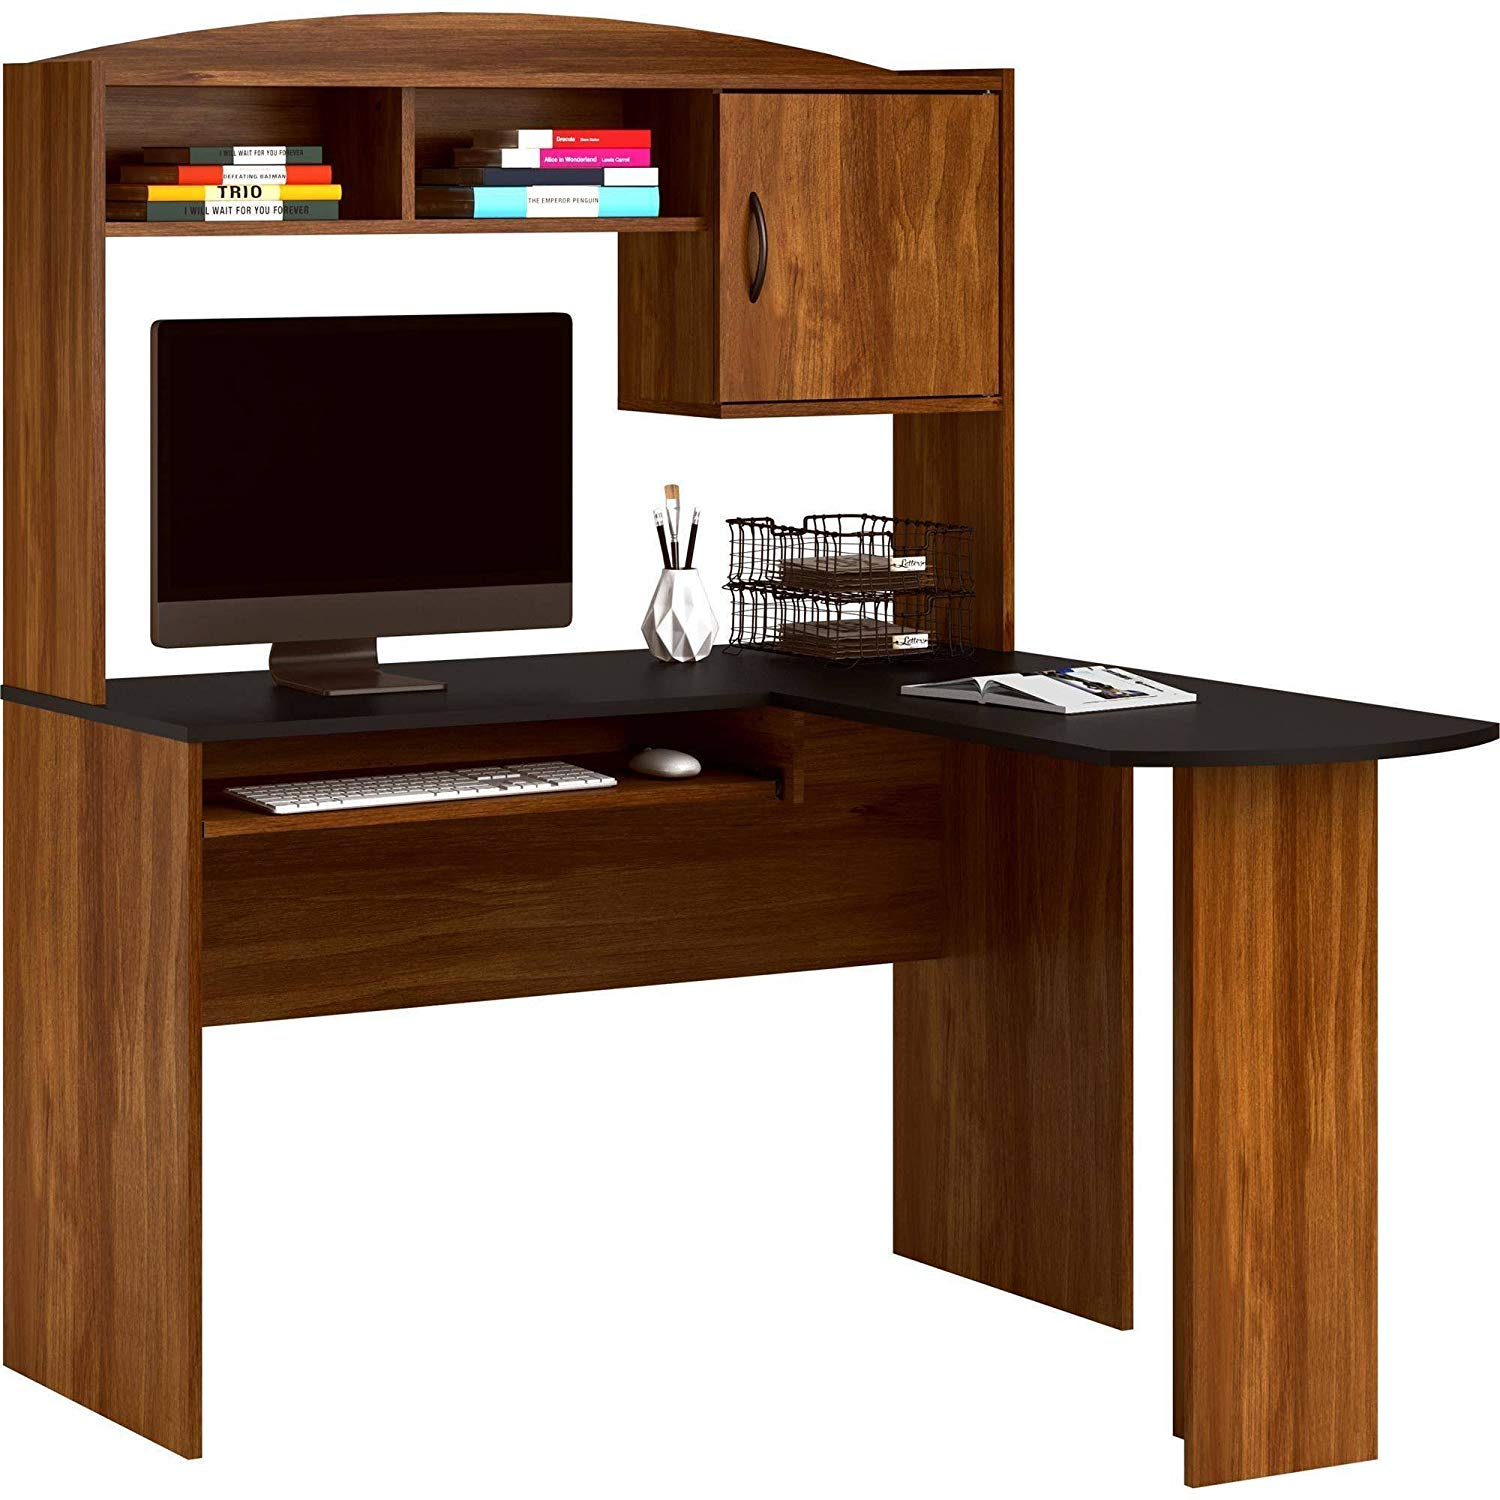 Multi-Functional L-Shaped Desk with Hutch Made of Wood, Storage Cabinet and Two Shelves, Slide-Out Keyboard Tray, Made to Fit in a Corner, Brown/Black + Expert Home Guide